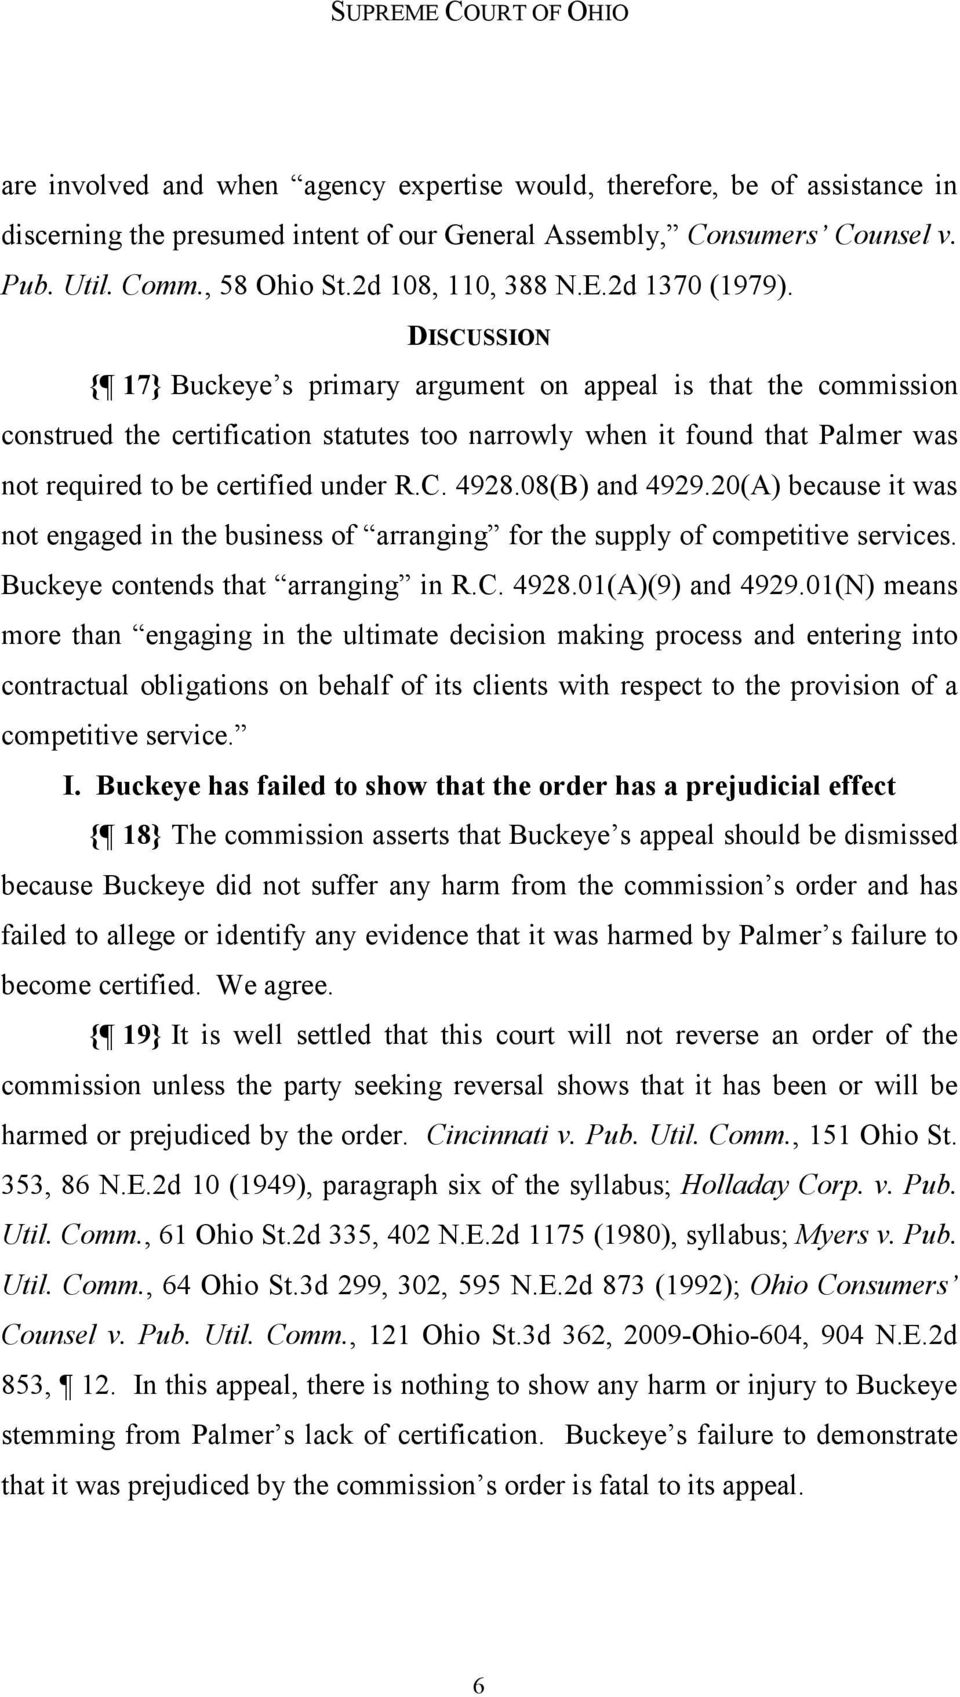 DISCUSSION { 17} Buckeye s primary argument on appeal is that the commission construed the certification statutes too narrowly when it found that Palmer was not required to be certified under R.C. 4928.